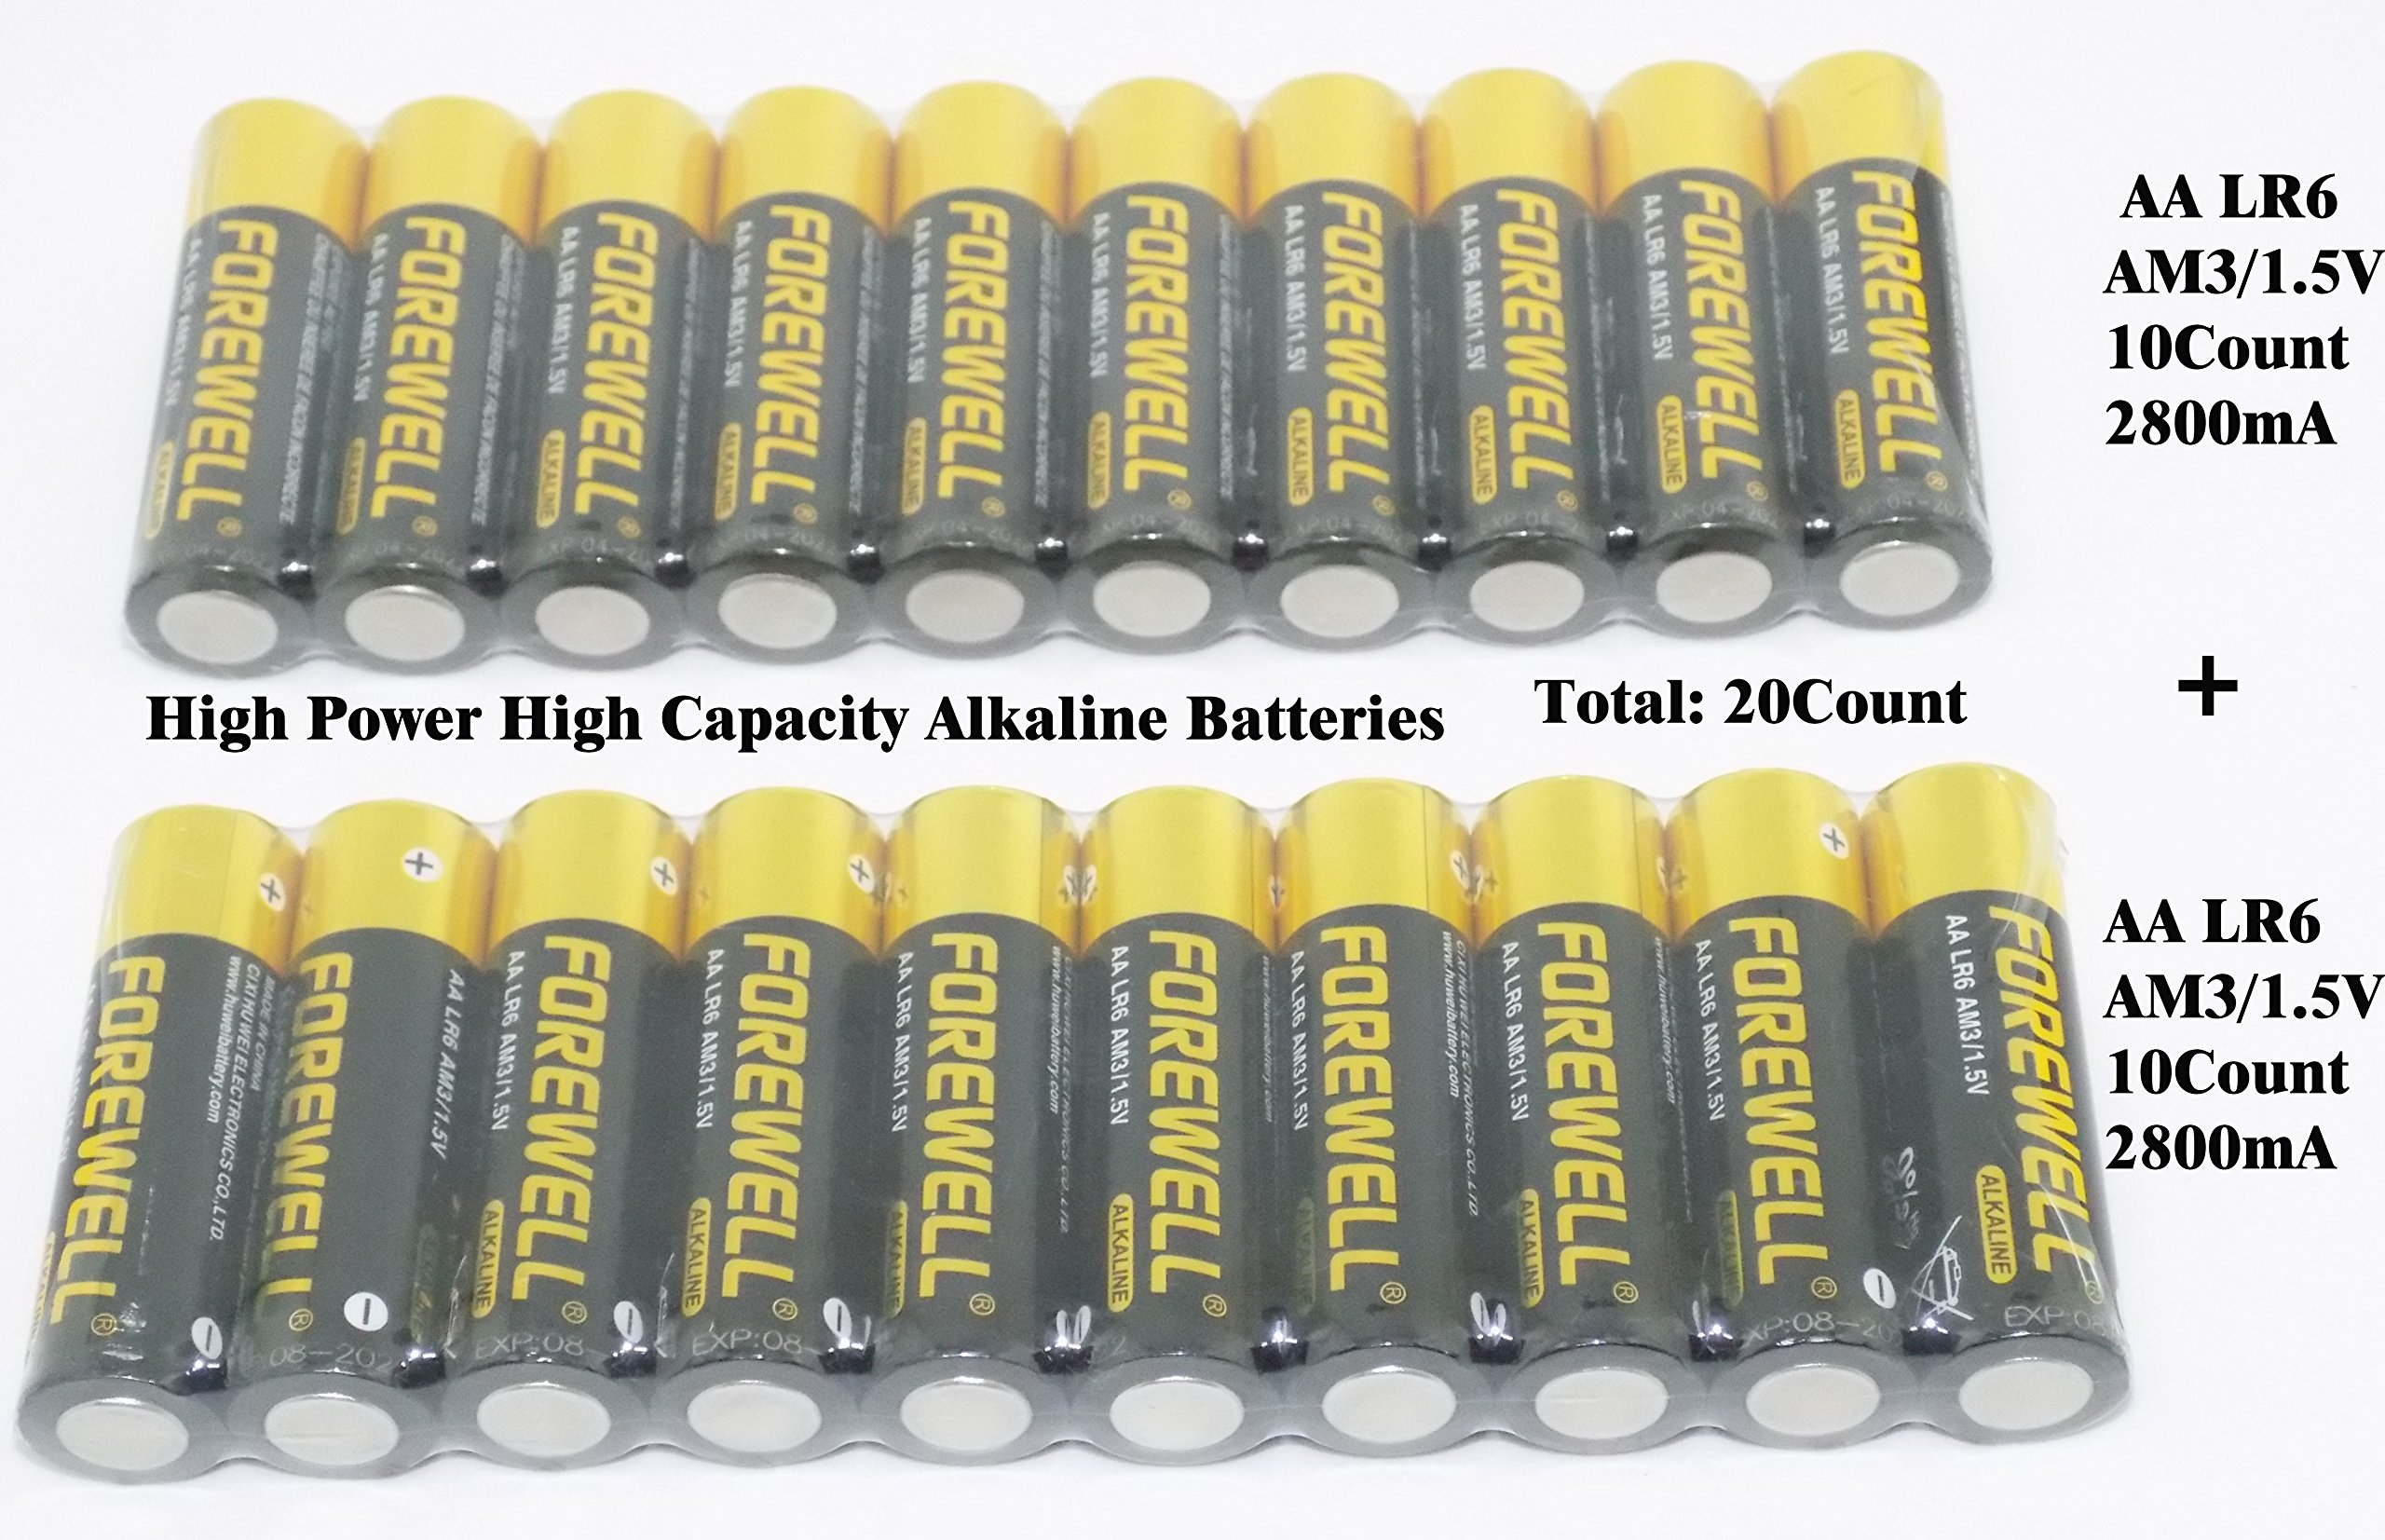 FOREWELL AA True High-Power Large-Capacity Alkaline Batteries,Very Suitable for High-Power Electrical Appliances, (LR06 AM3 1.5V2800mAH), a Total of 20count (10/Pack) Welcome to Actually Test.